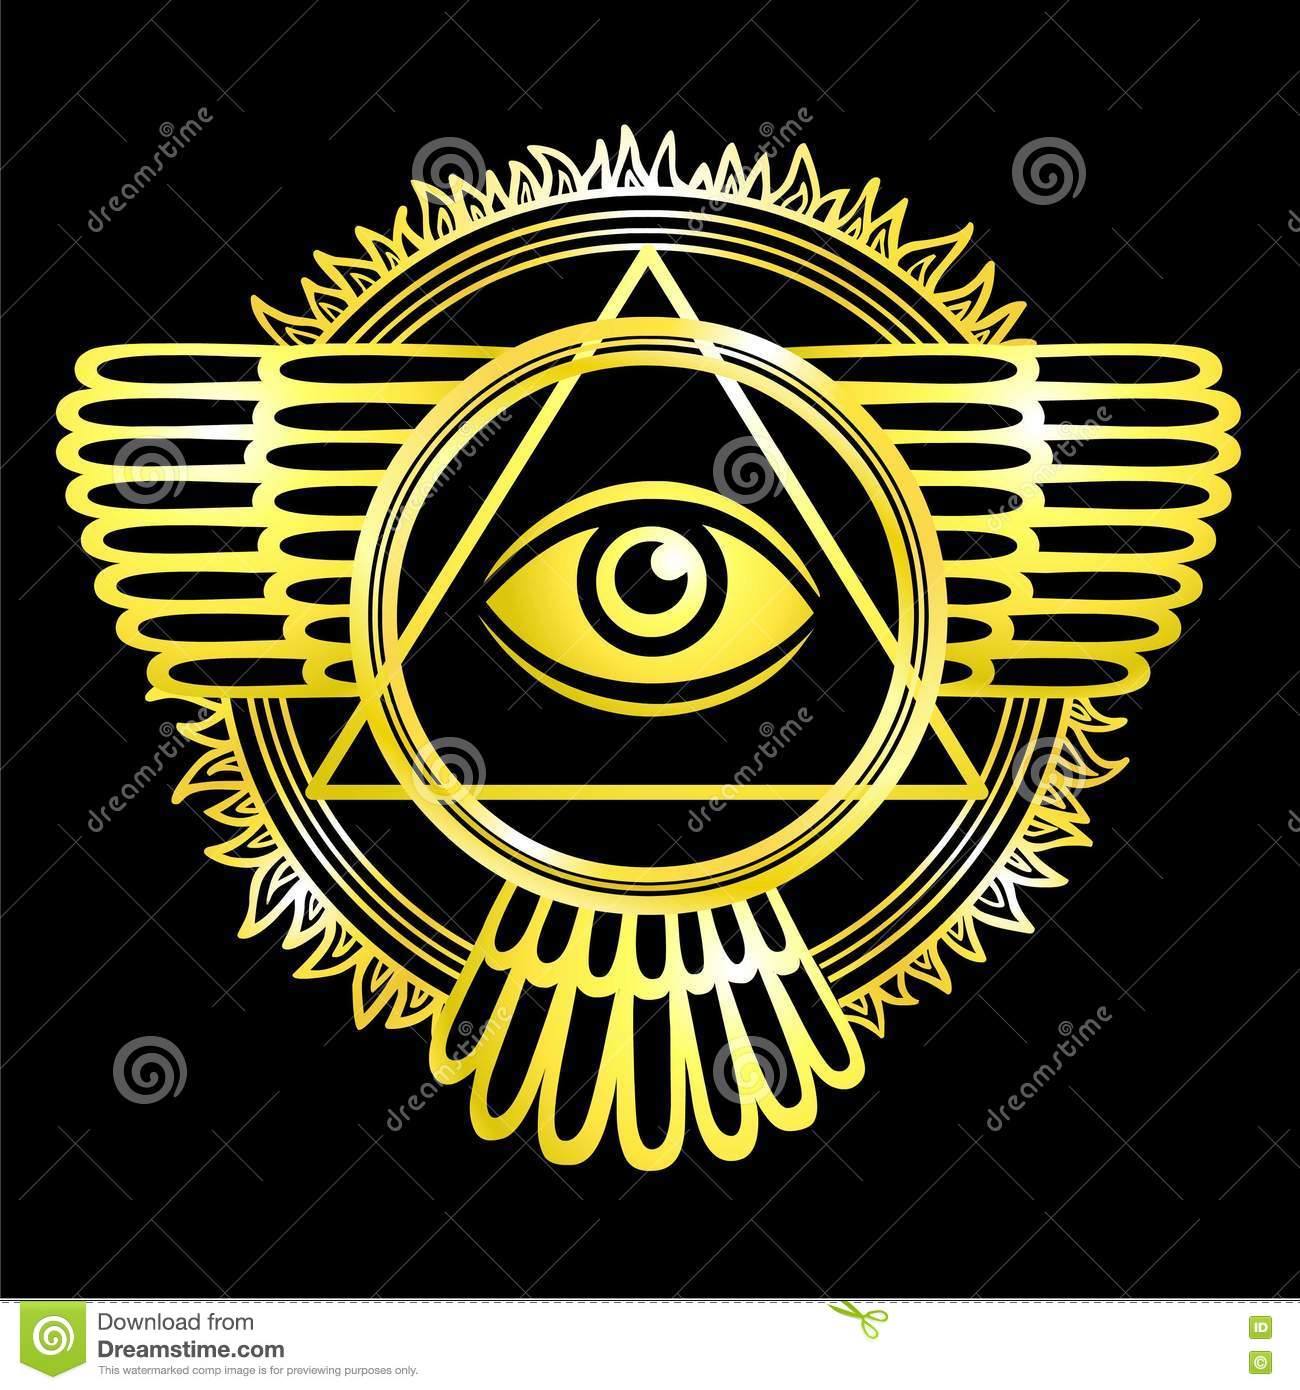 Esoteric winged sign of a pyramid.